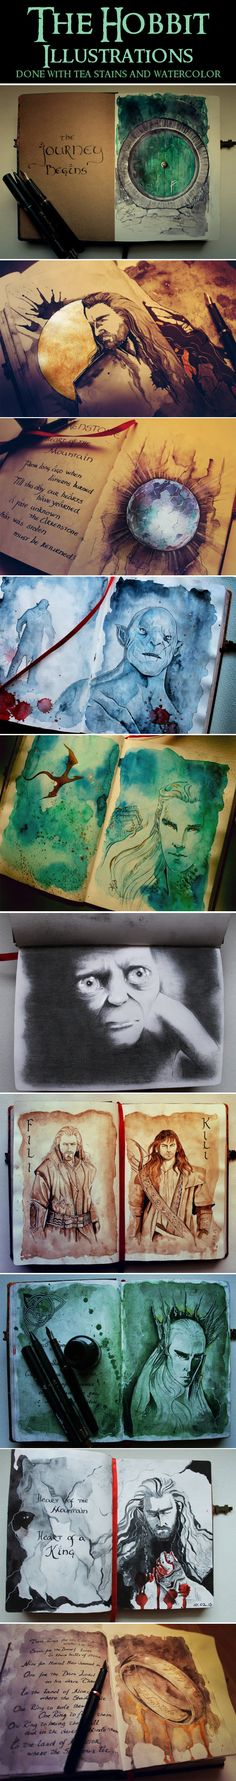 The Hobbit Illustrations.